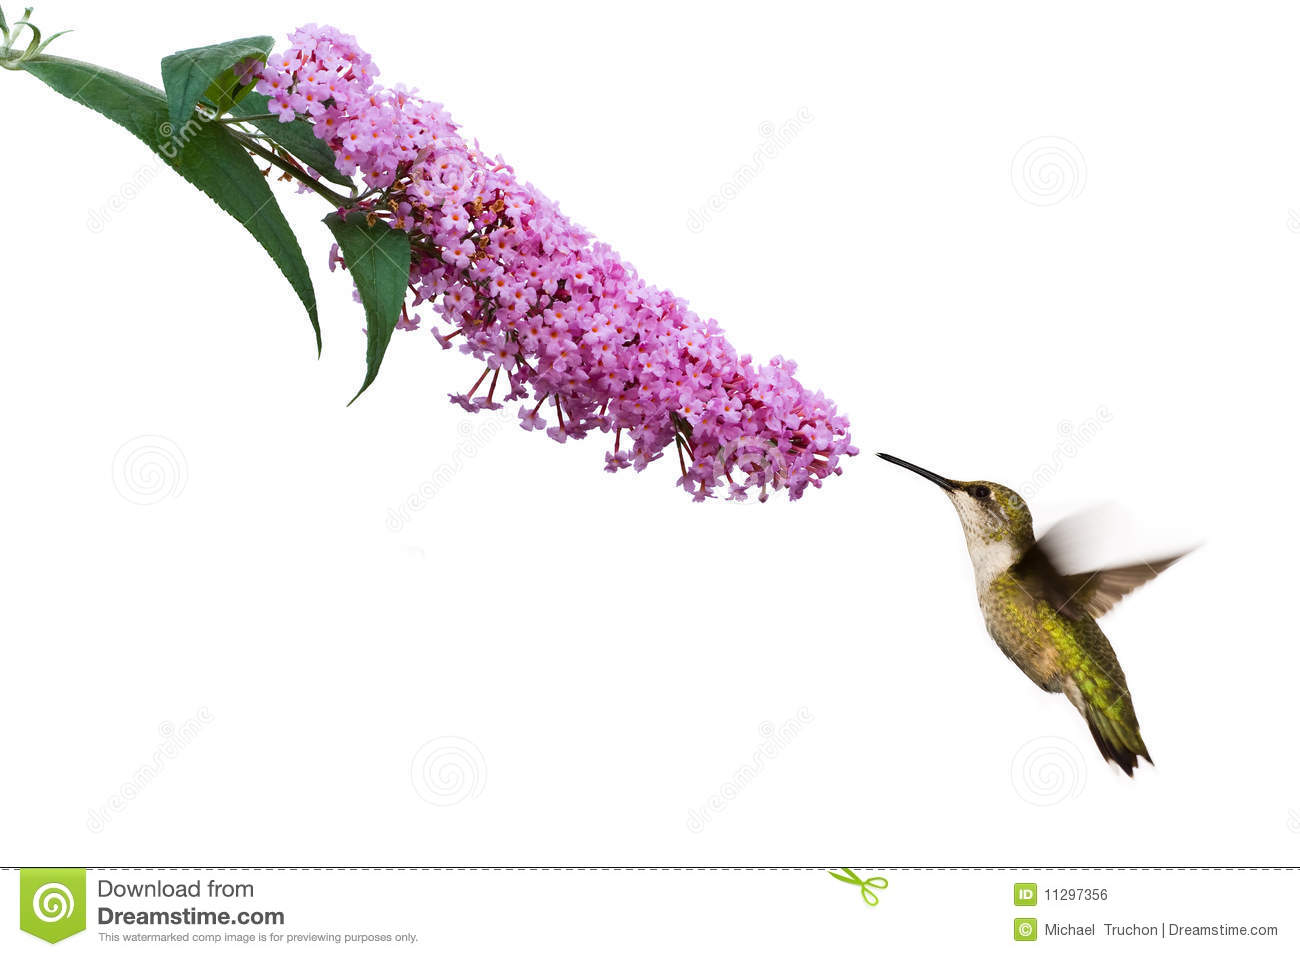 Female ruby throated hummingbird hovers near pink butterflybush. image ...